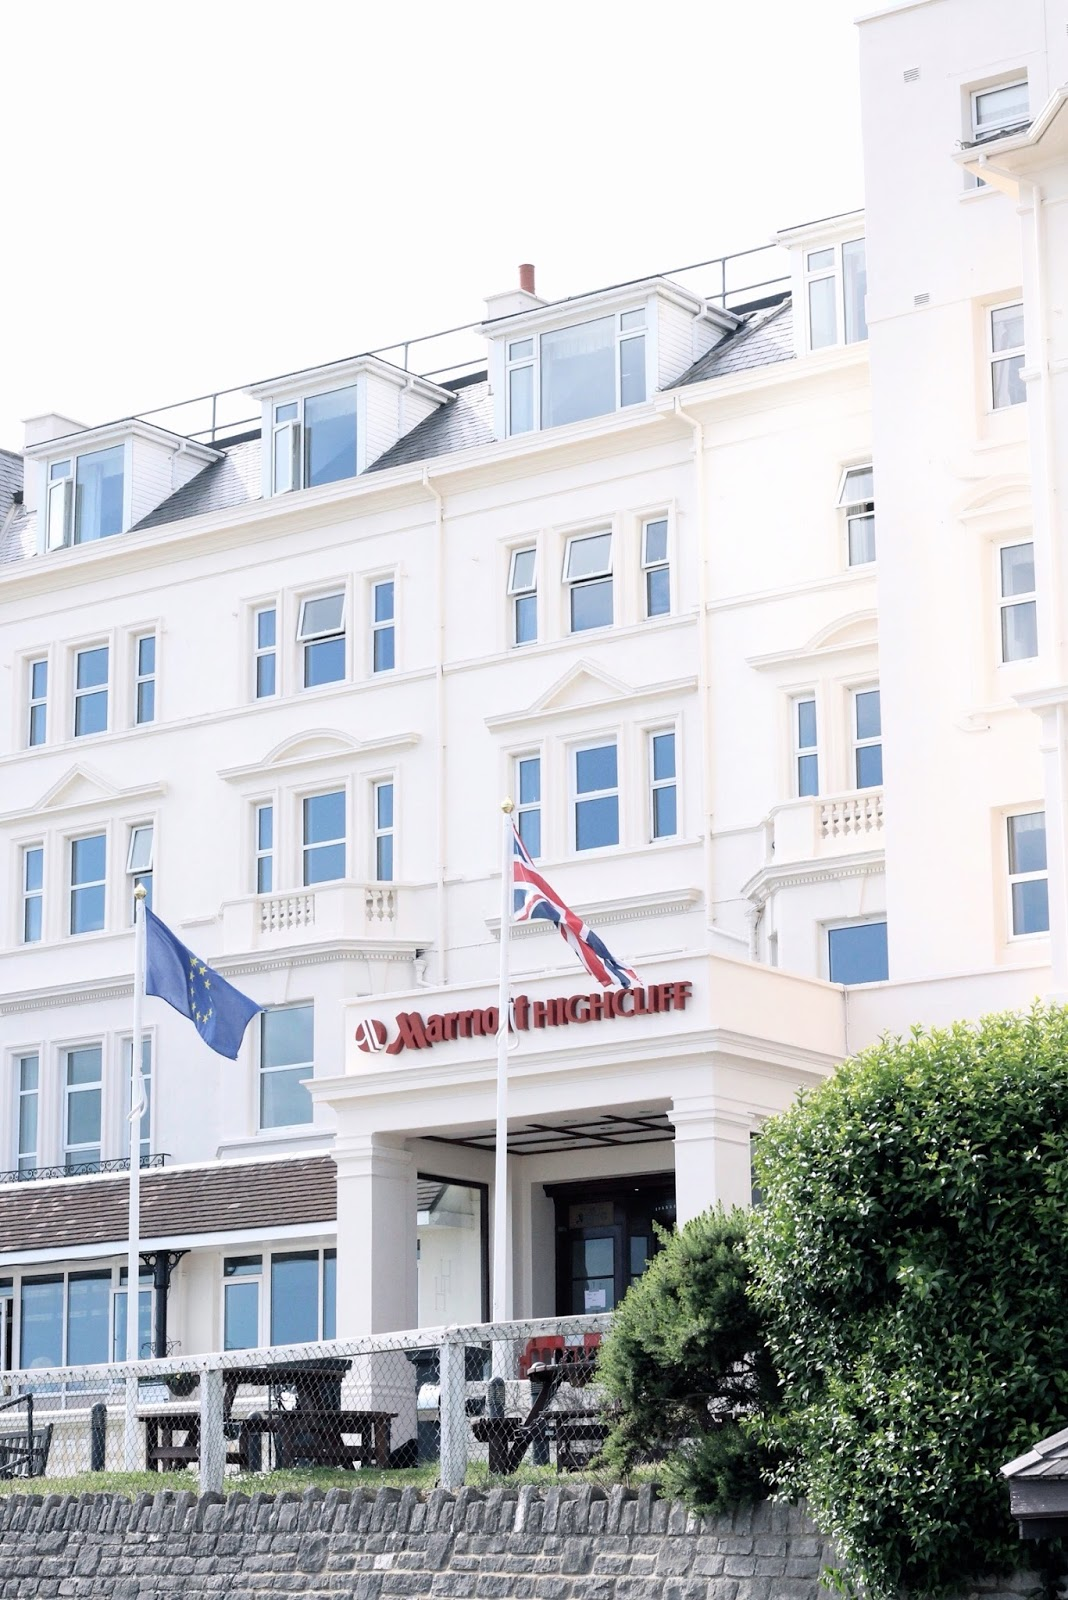 Marriott Highcliff Hotel in Bournemouth